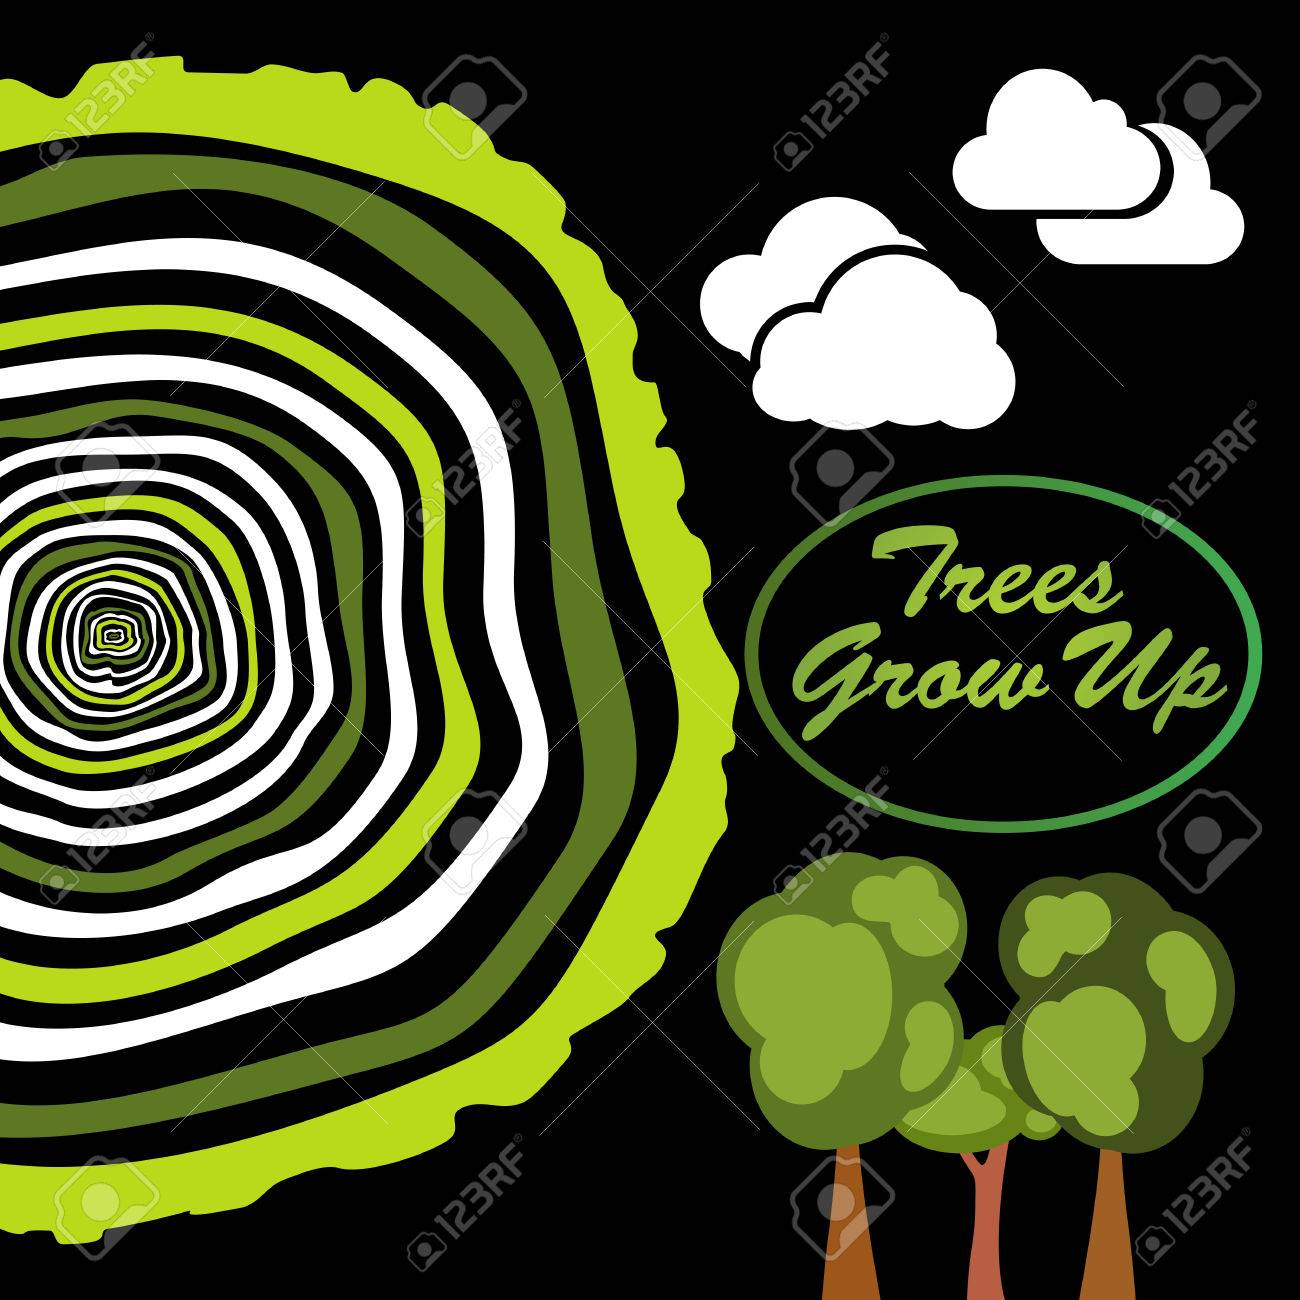 Trees Grow Up Tree Rings Saw Cut Tree Trunk Vector Royalty Free Cliparts Vectors And Stock Illustration Image 39052365 Tree of life free content , cartoon trees, brown and green tree illustration png clipart. 123rf com